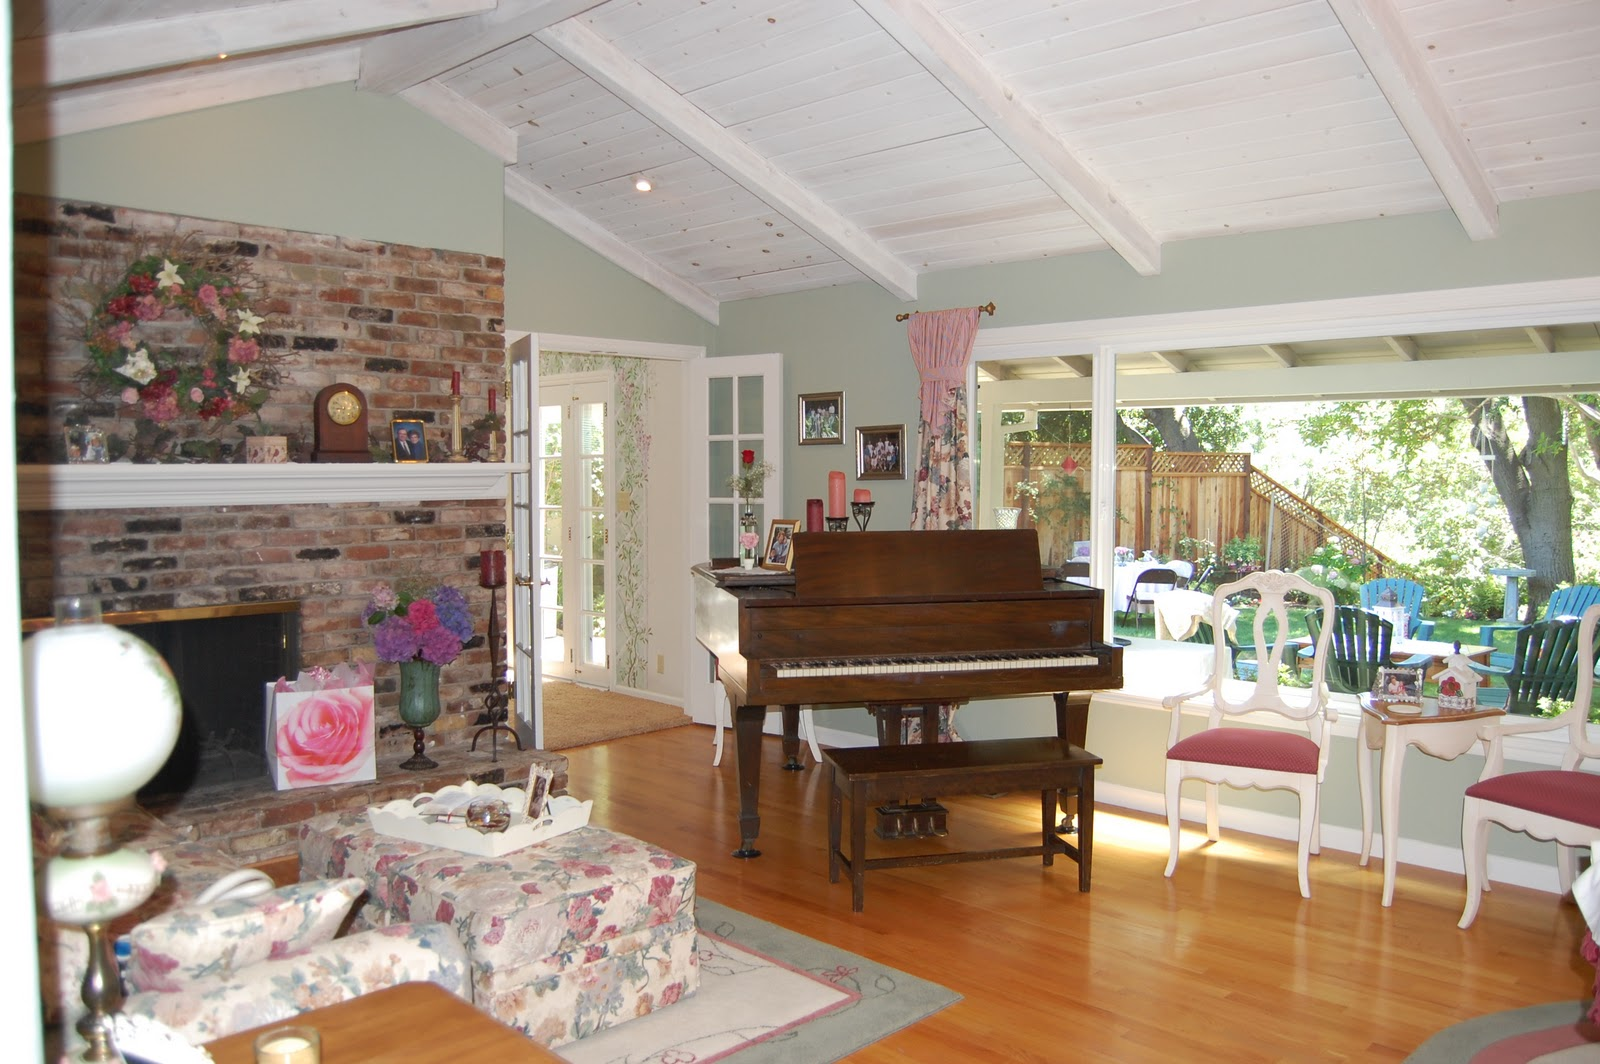 Our Living Room With Baby Grand Piano Its 100 Years Old And I Love It